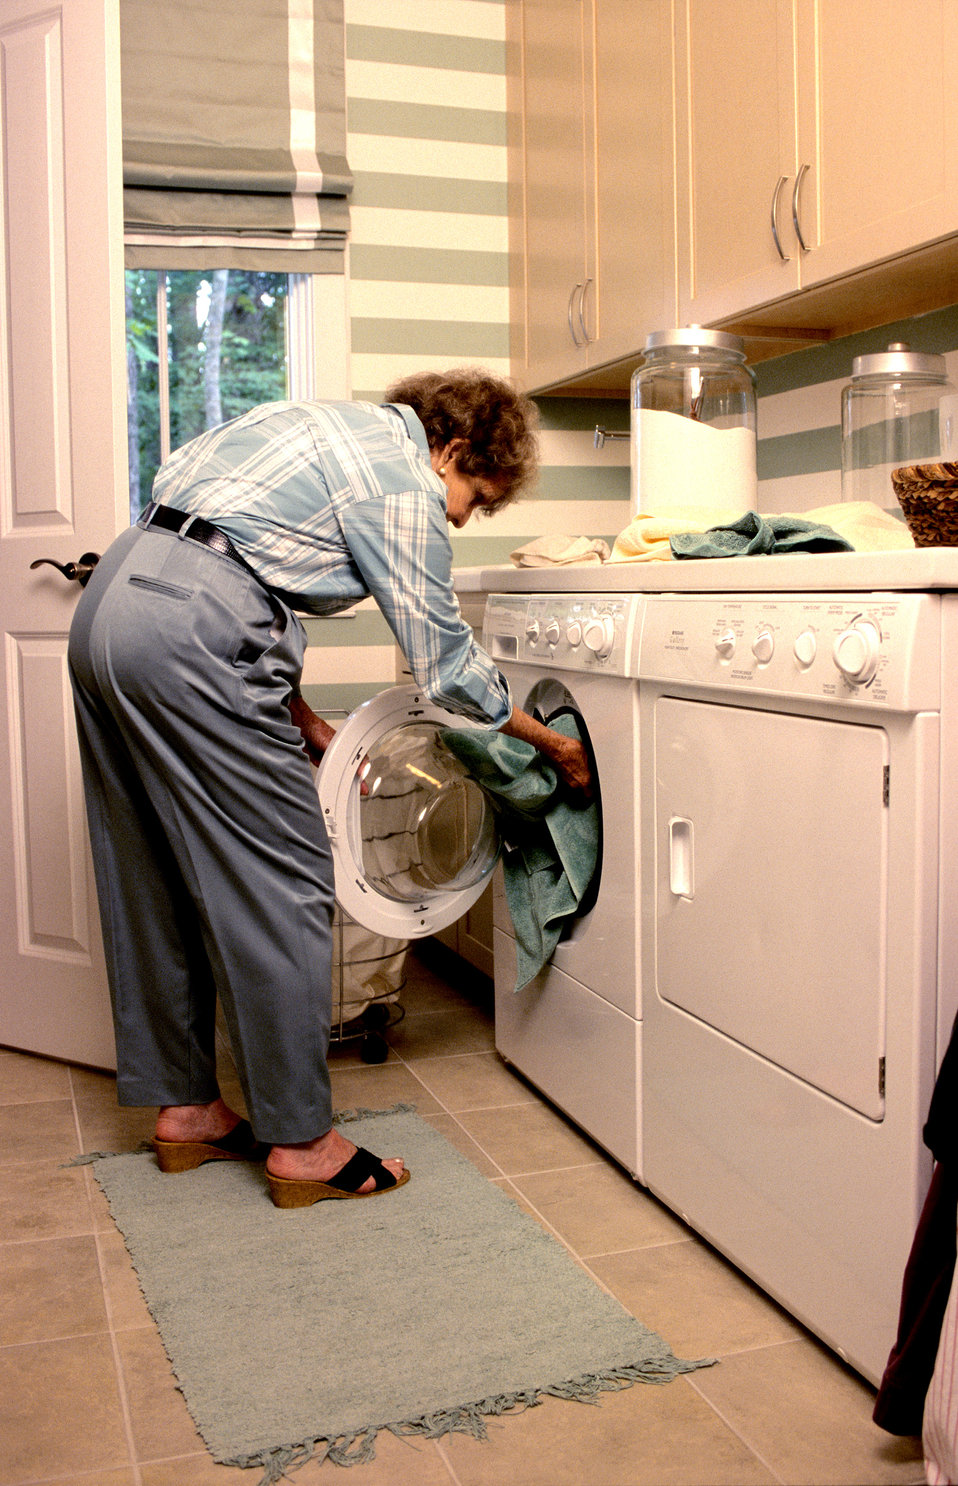 This 2000 image depicted an elderly woman filling a front-loading clothes washing machine, which was located directly adjacent to a front-lo